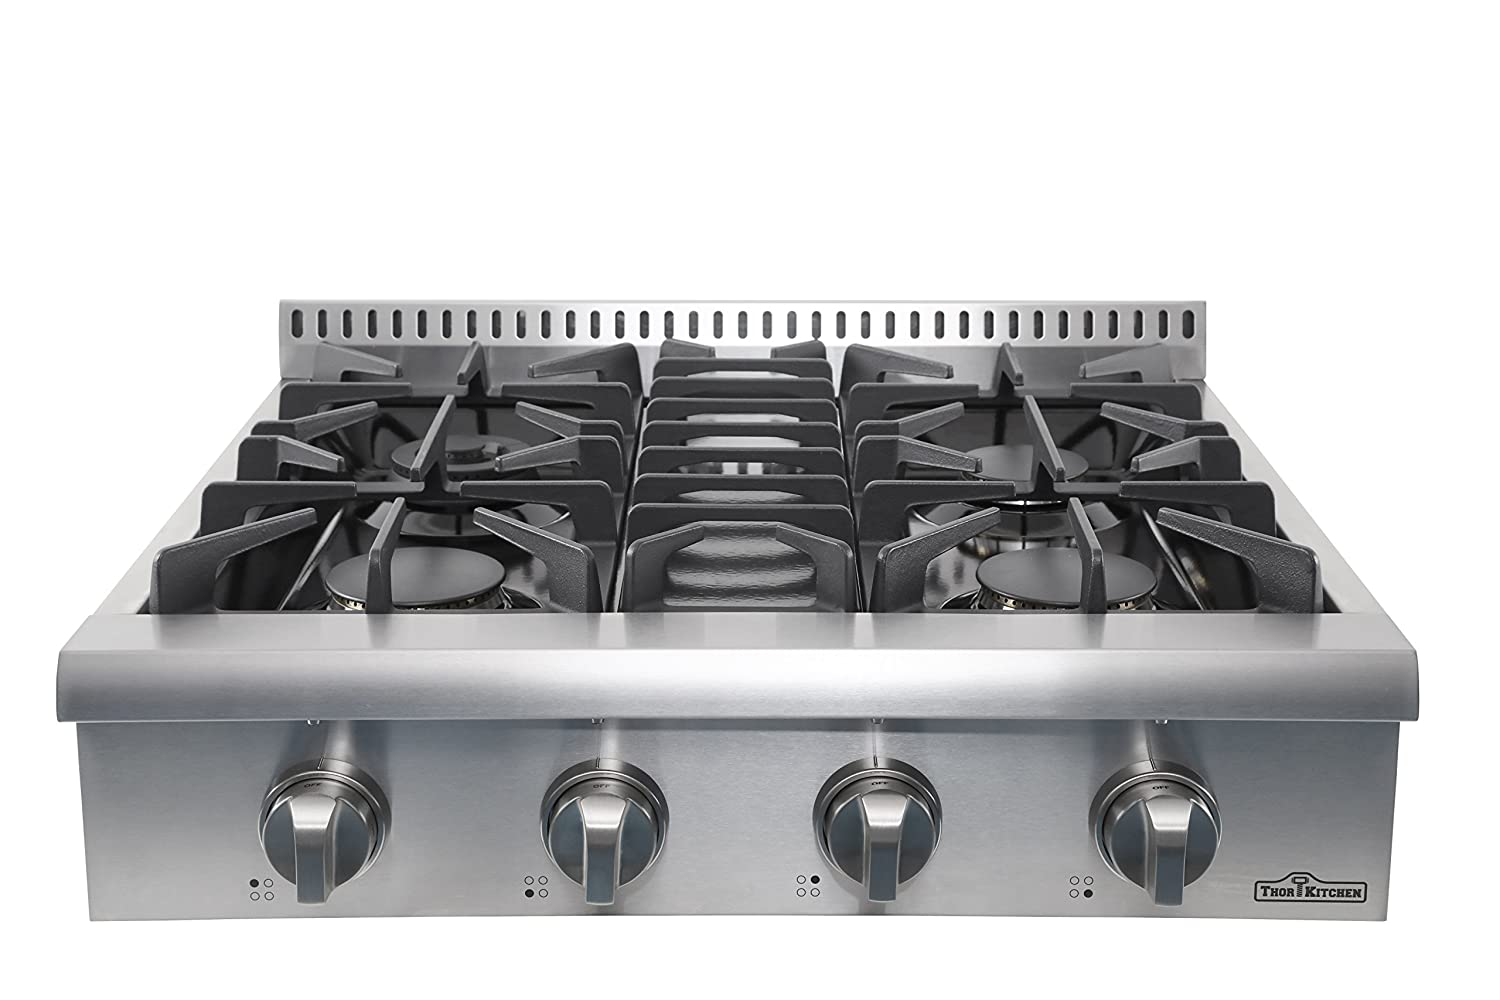 "Thor Kitchen 30"" Pro-Style Stainless Steel Gas Rangetop, Gas Stove Top Cooker with 4 Sealed Burners and Light Up Control Knob - HRT3003U (NO Conversion Kit)"